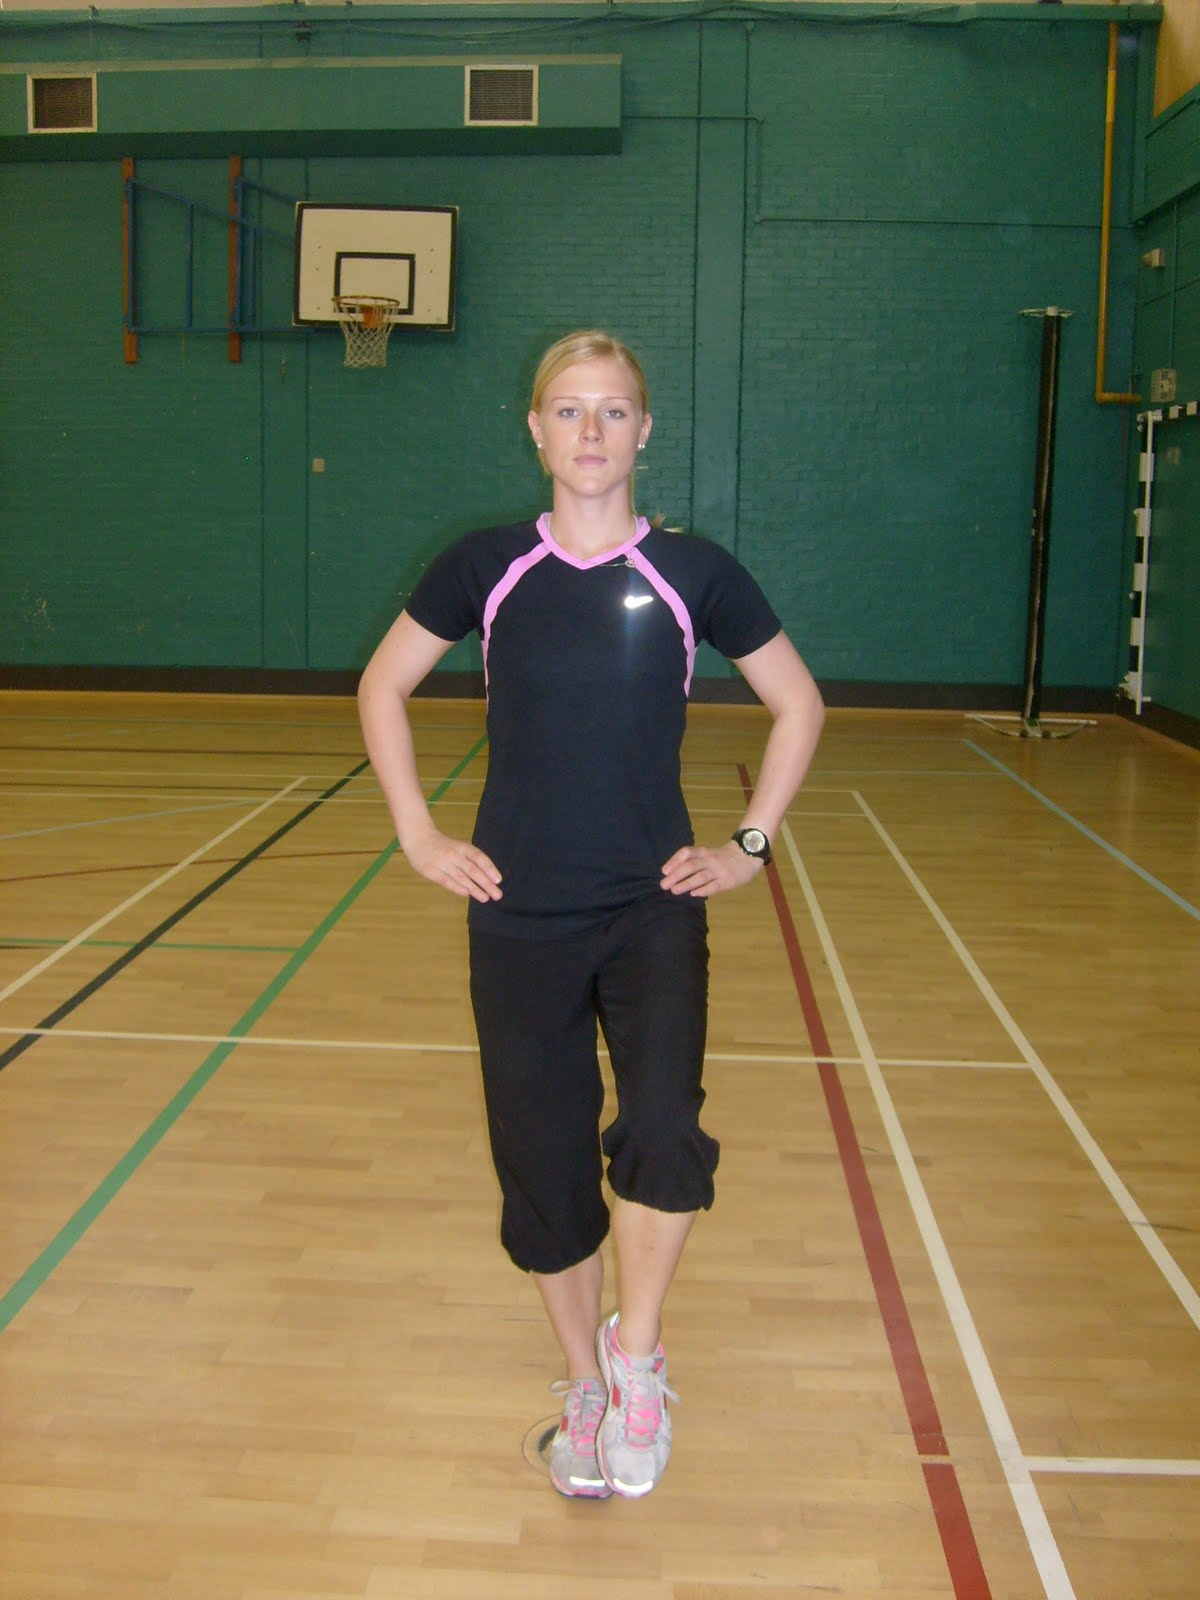 Balance On One Foot Hands On Hips